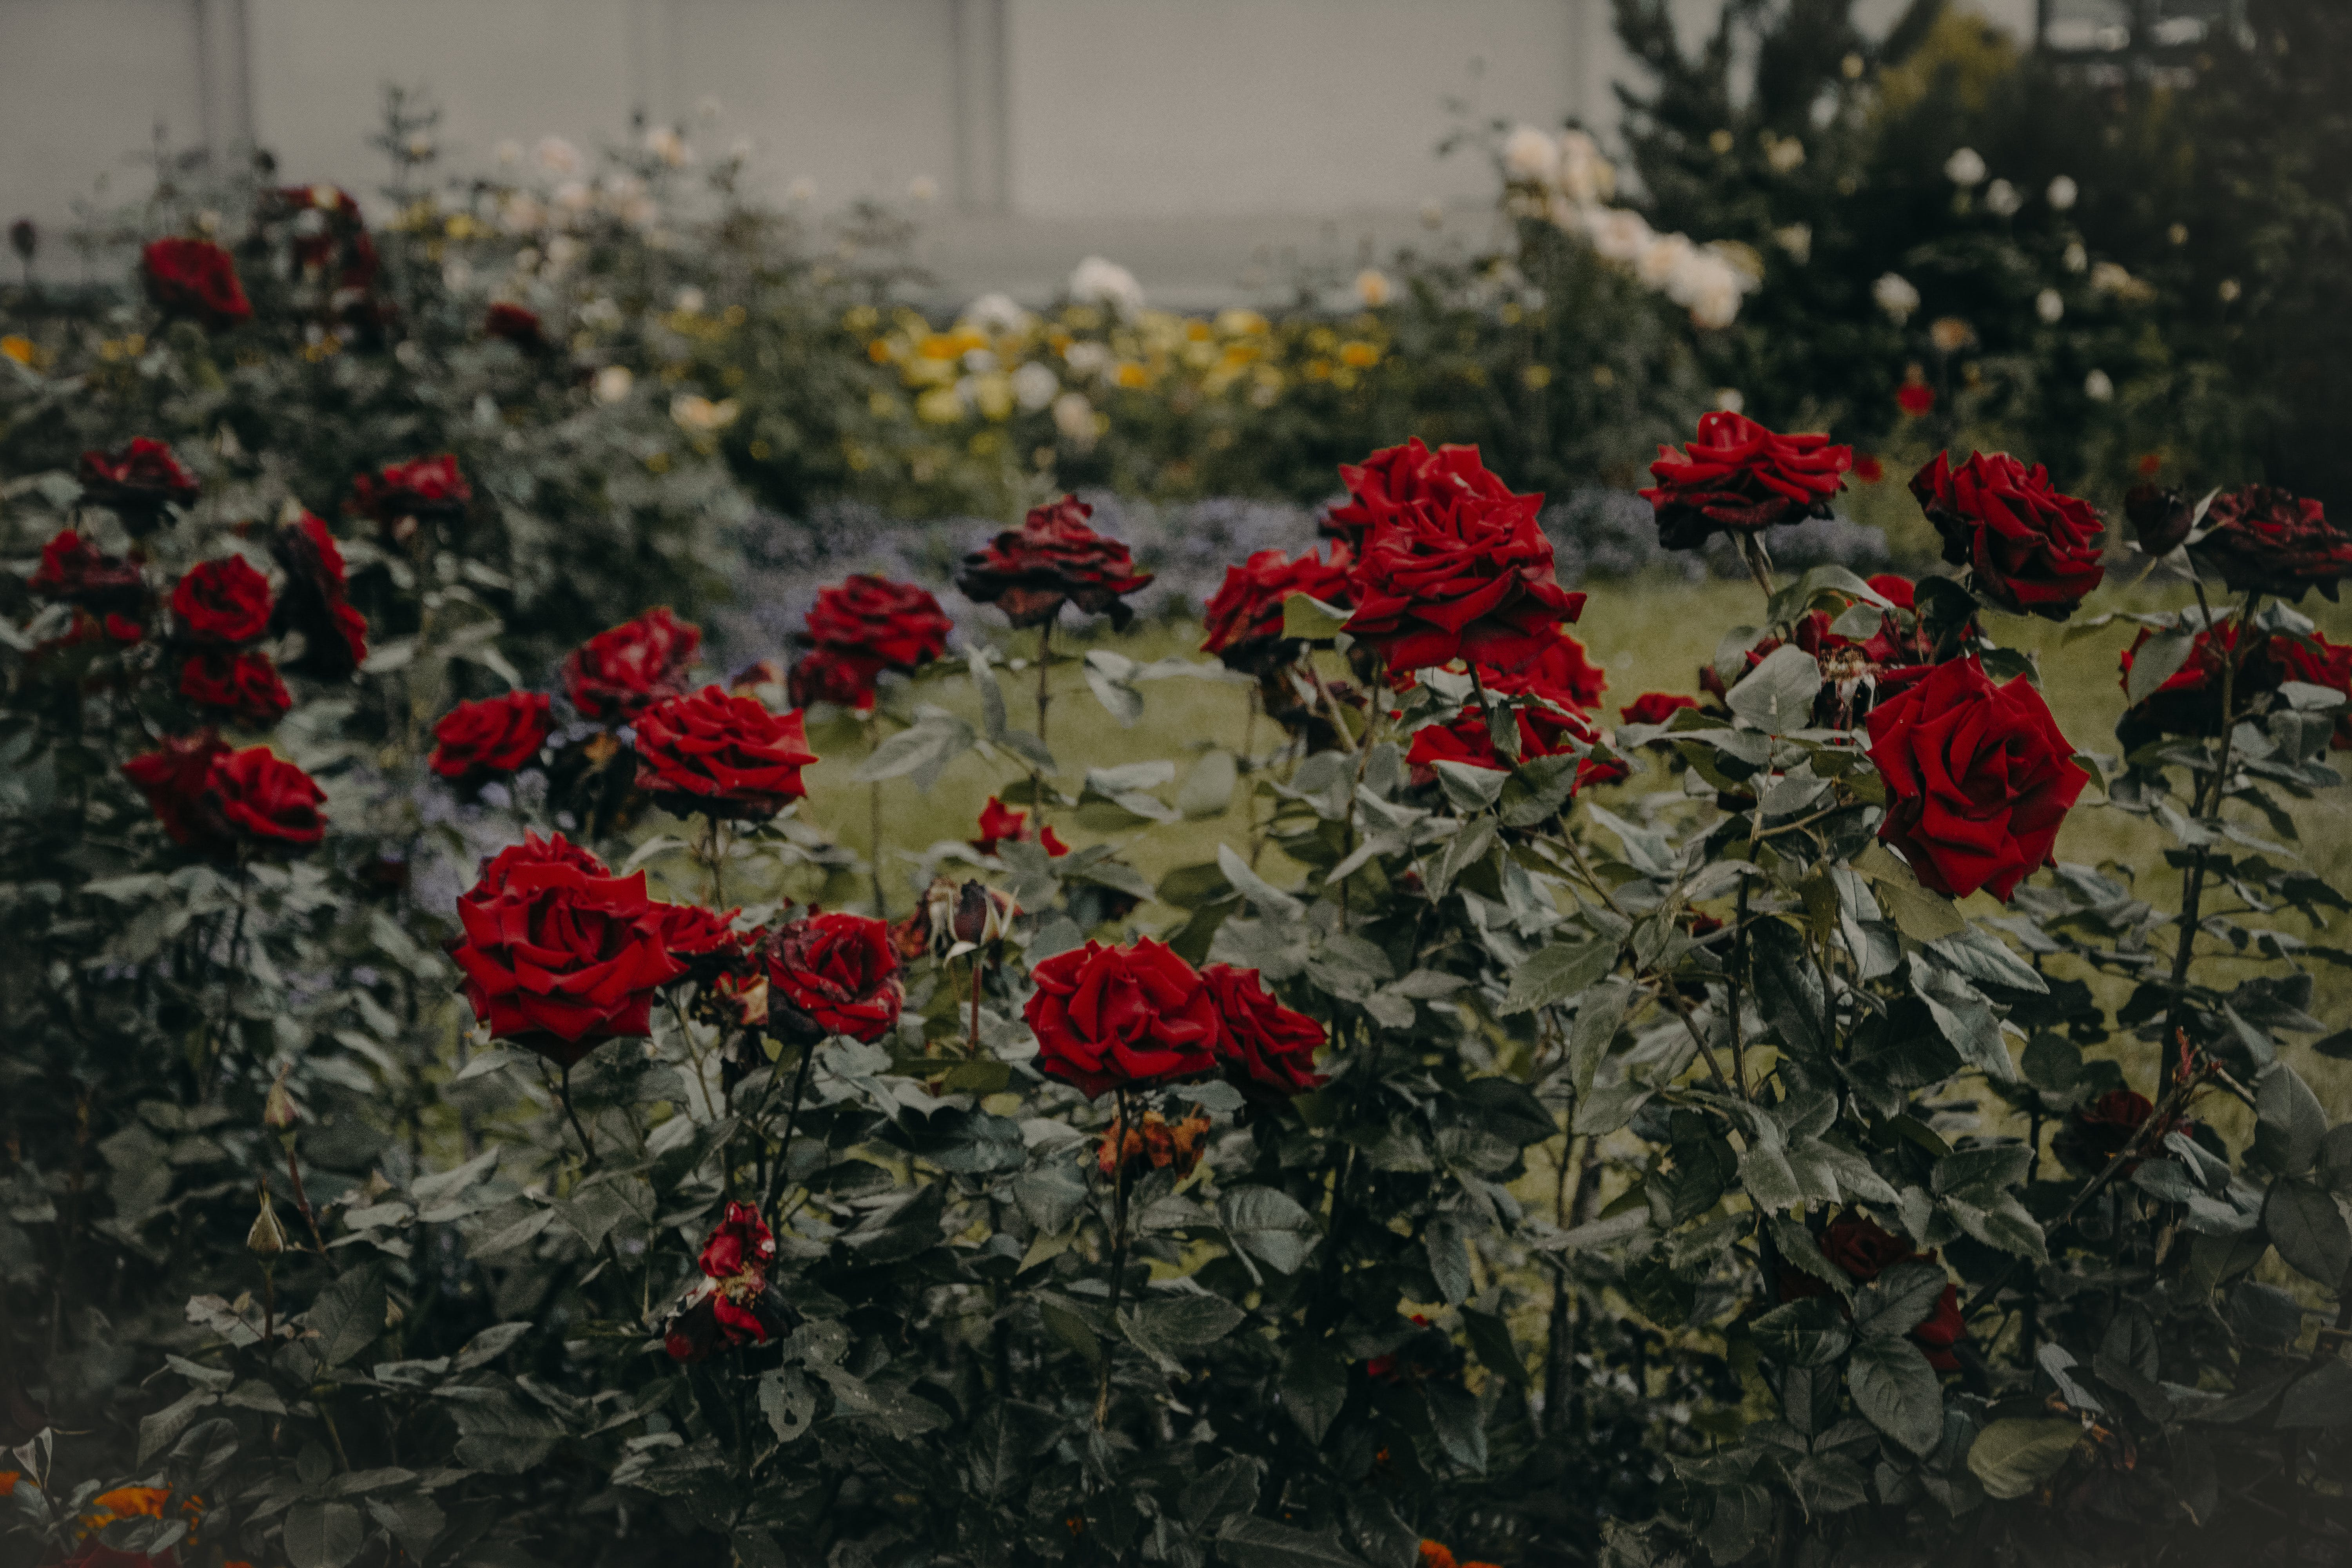 Red Roses Garden in Bloom